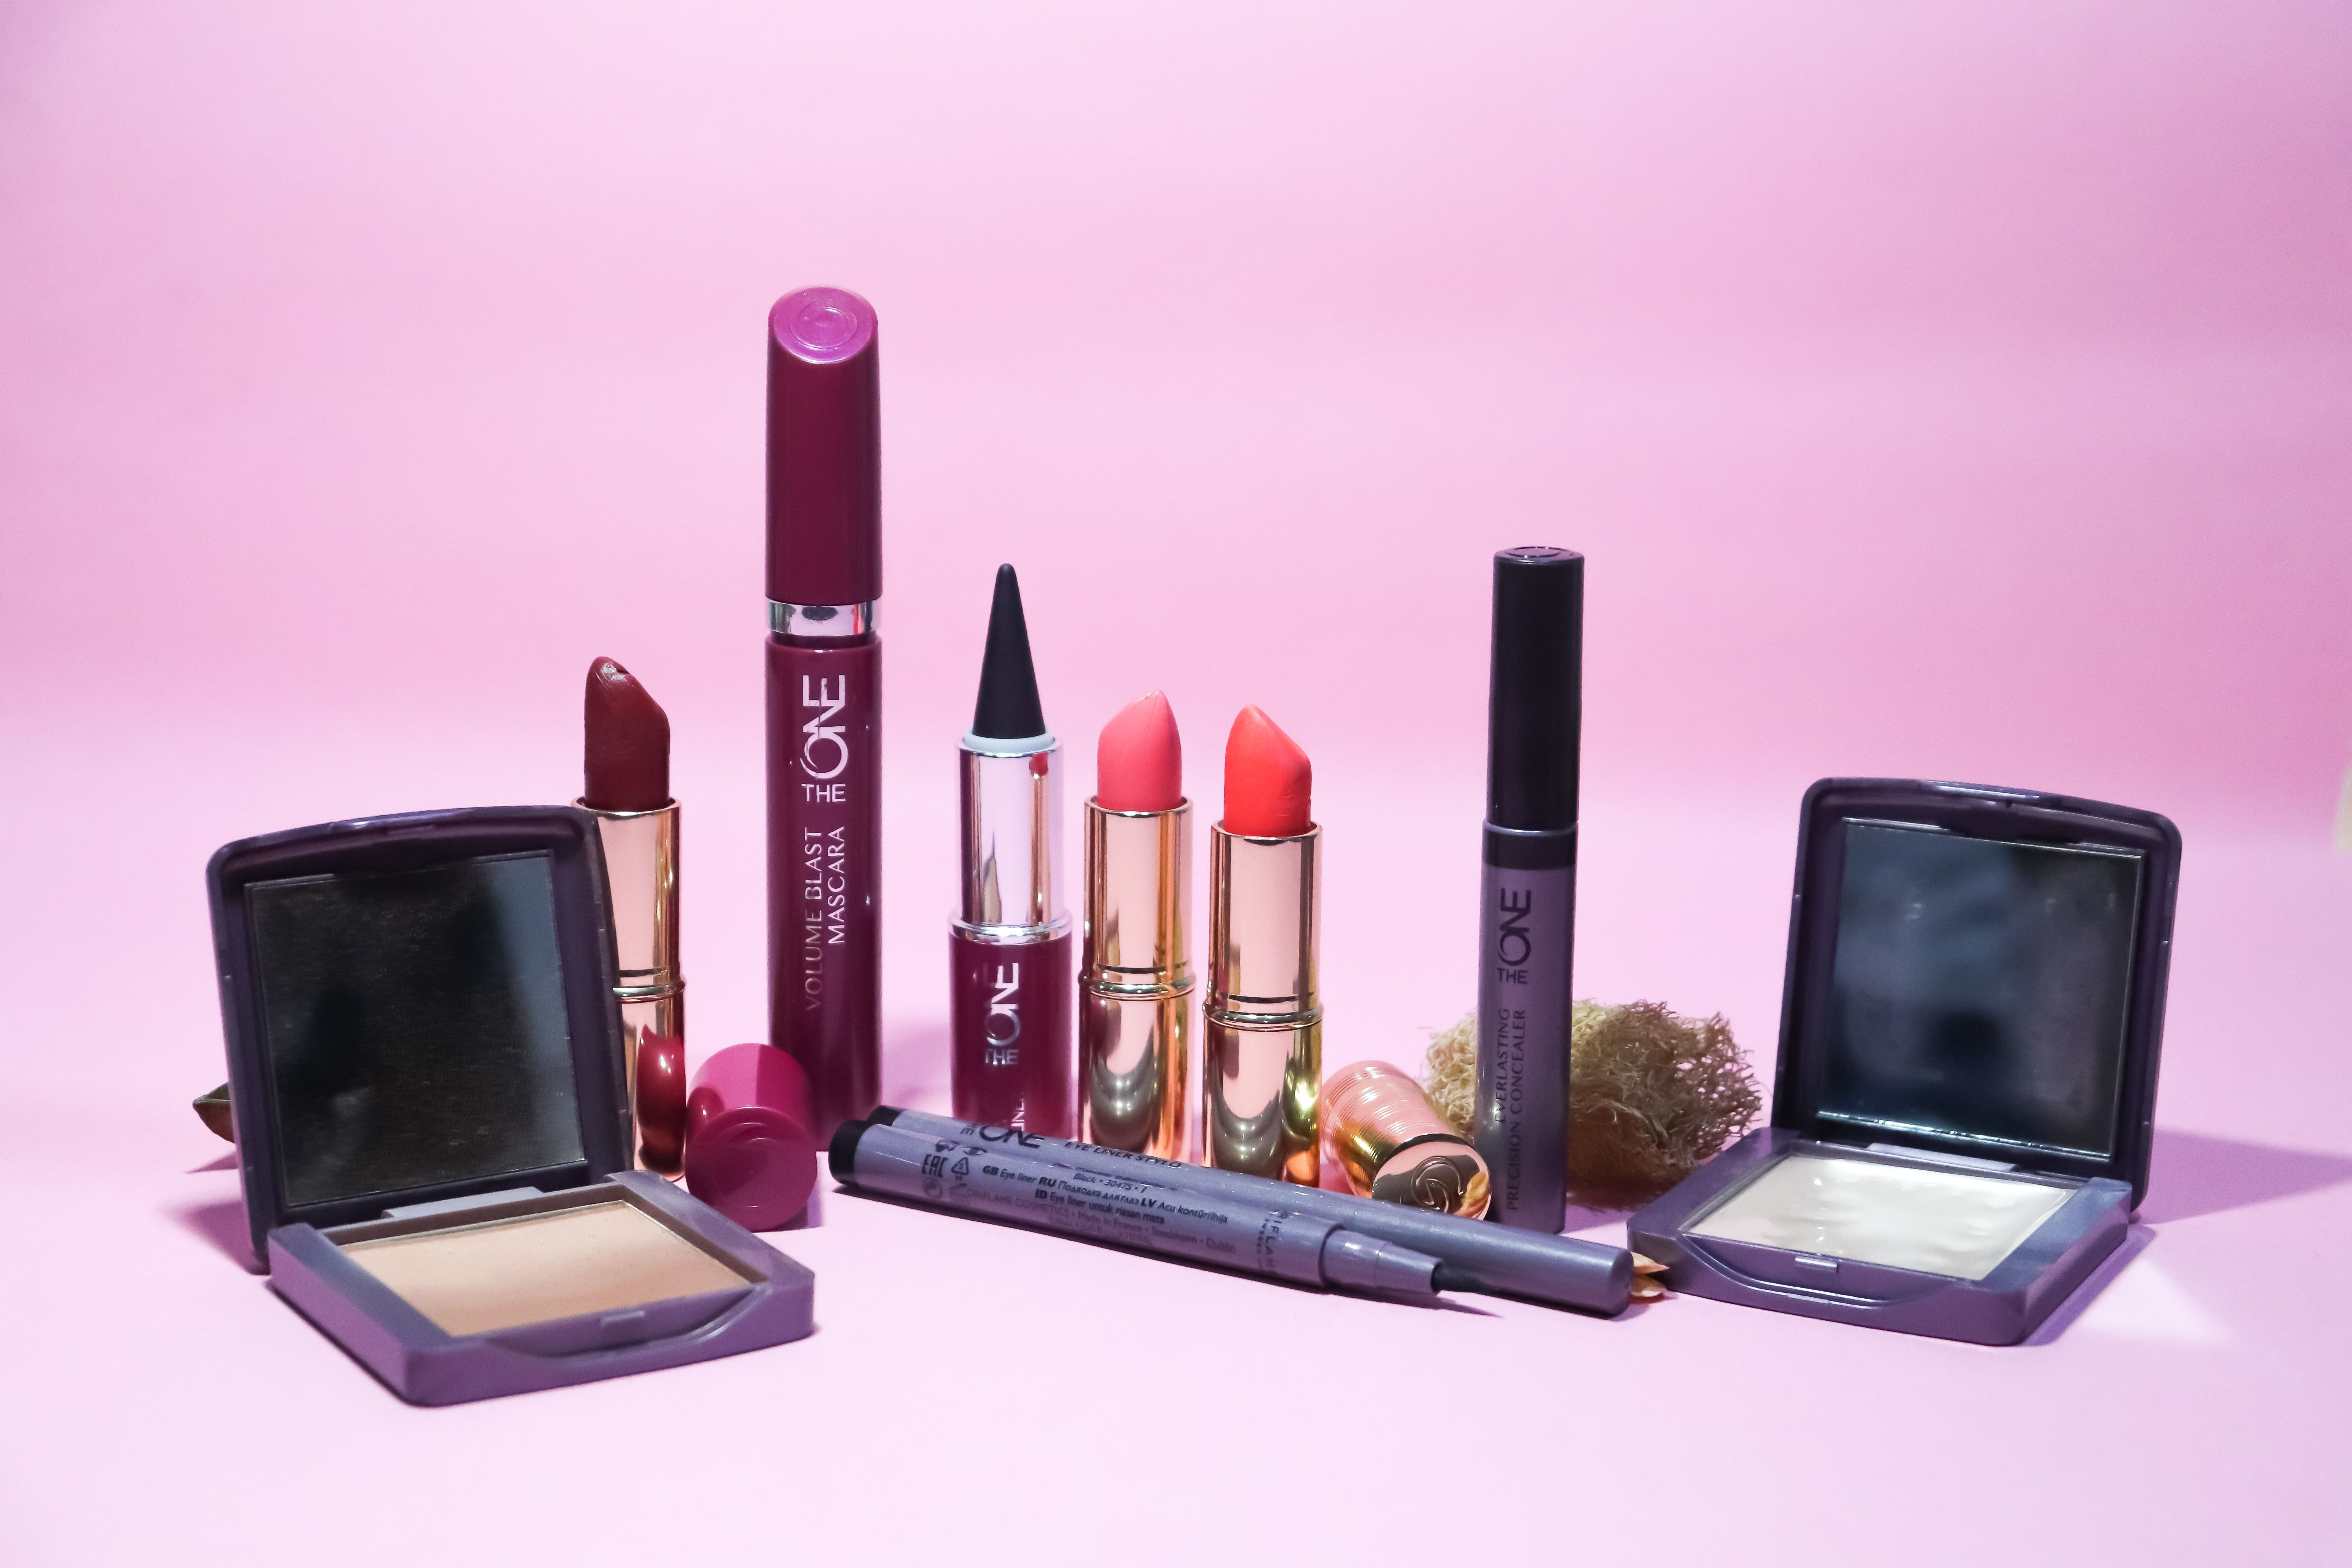 EBOSE Oriflame beauty products, Beauty, Shave club